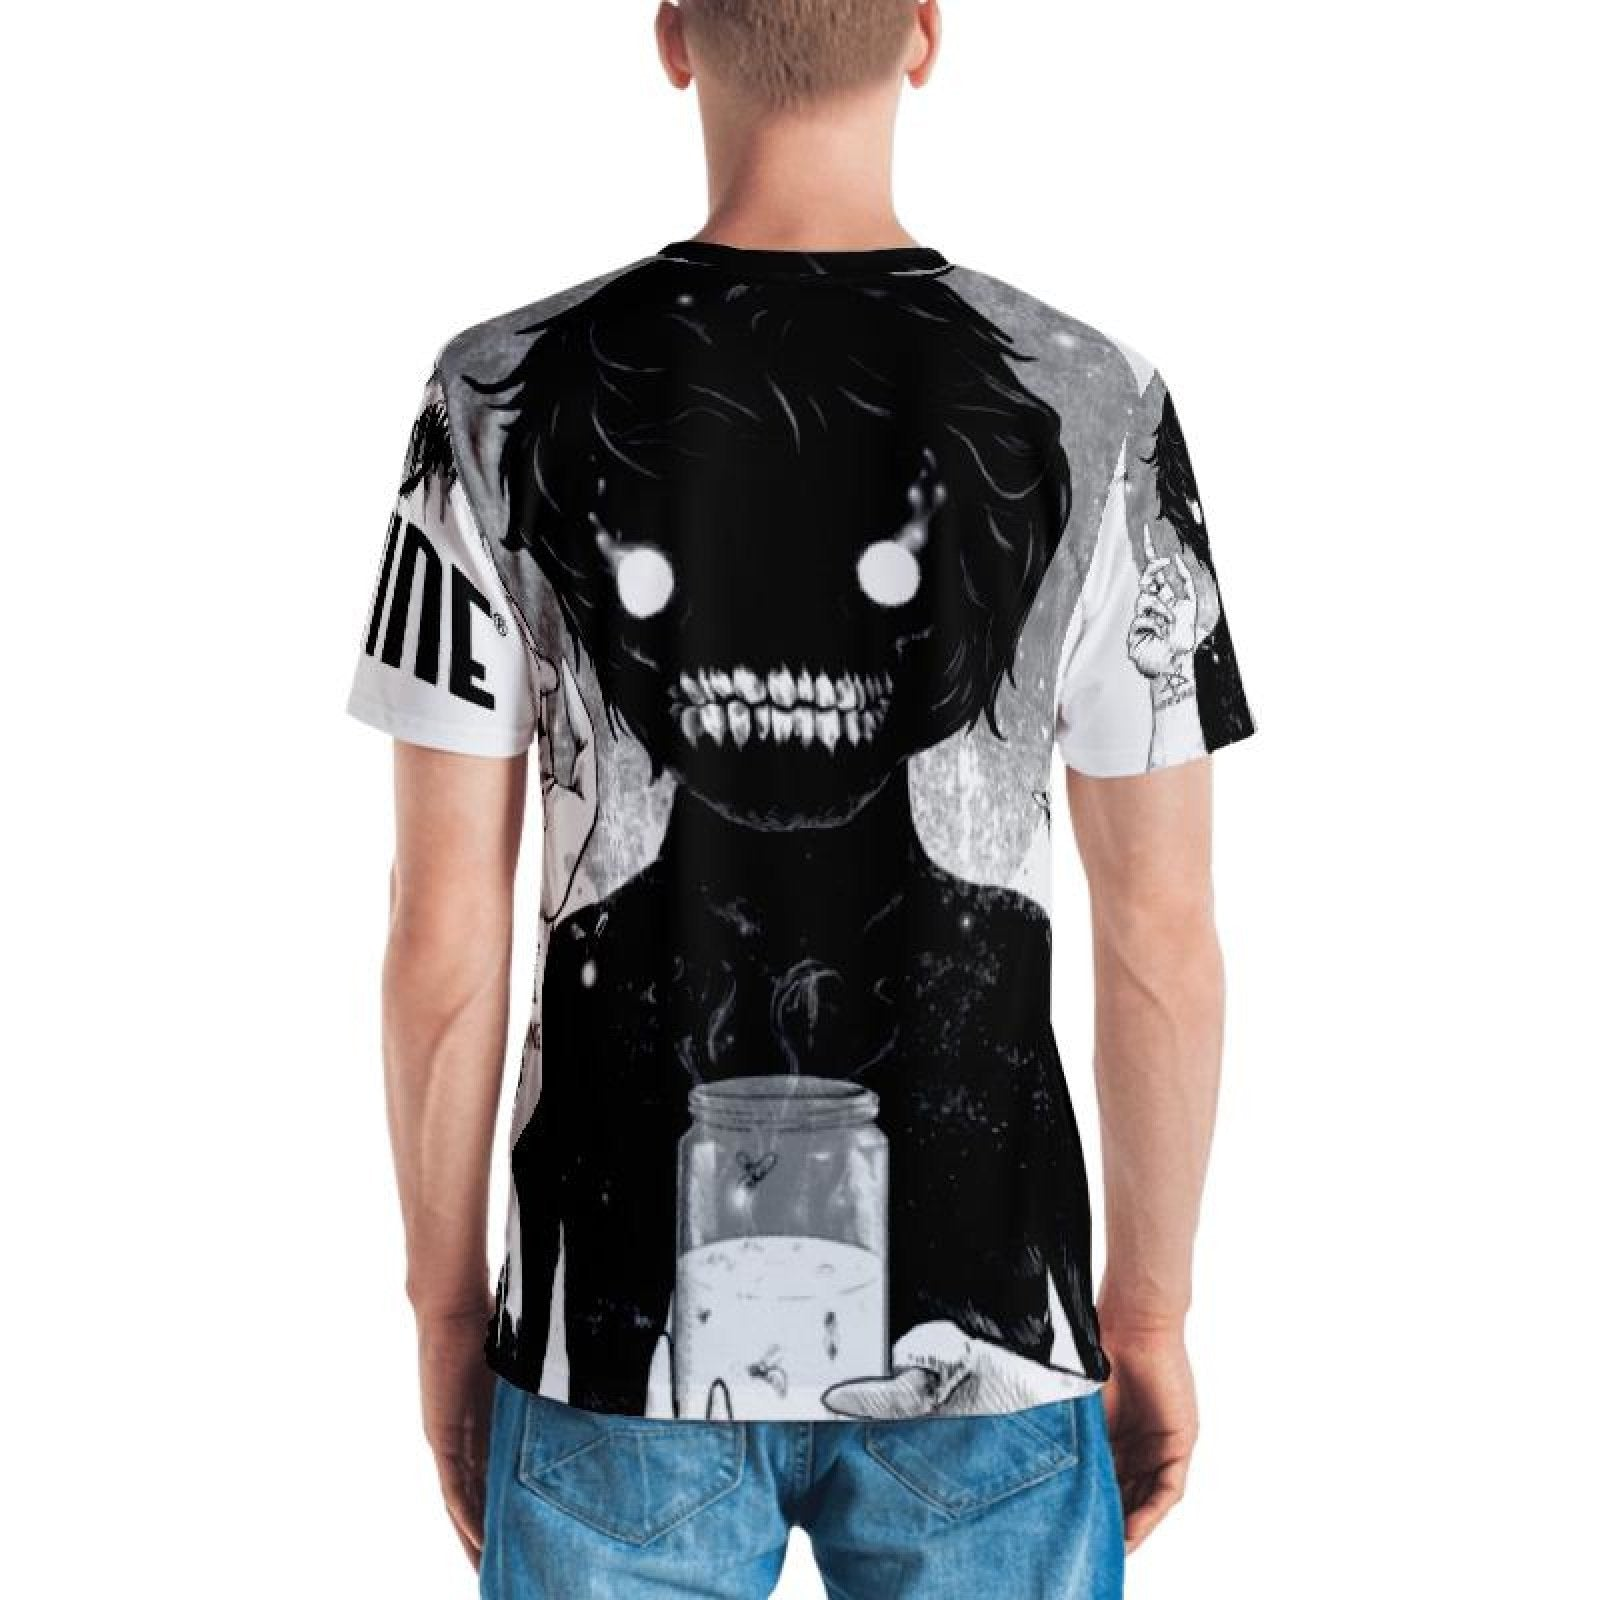 Creep All-Over Print T-Shirt Norvine